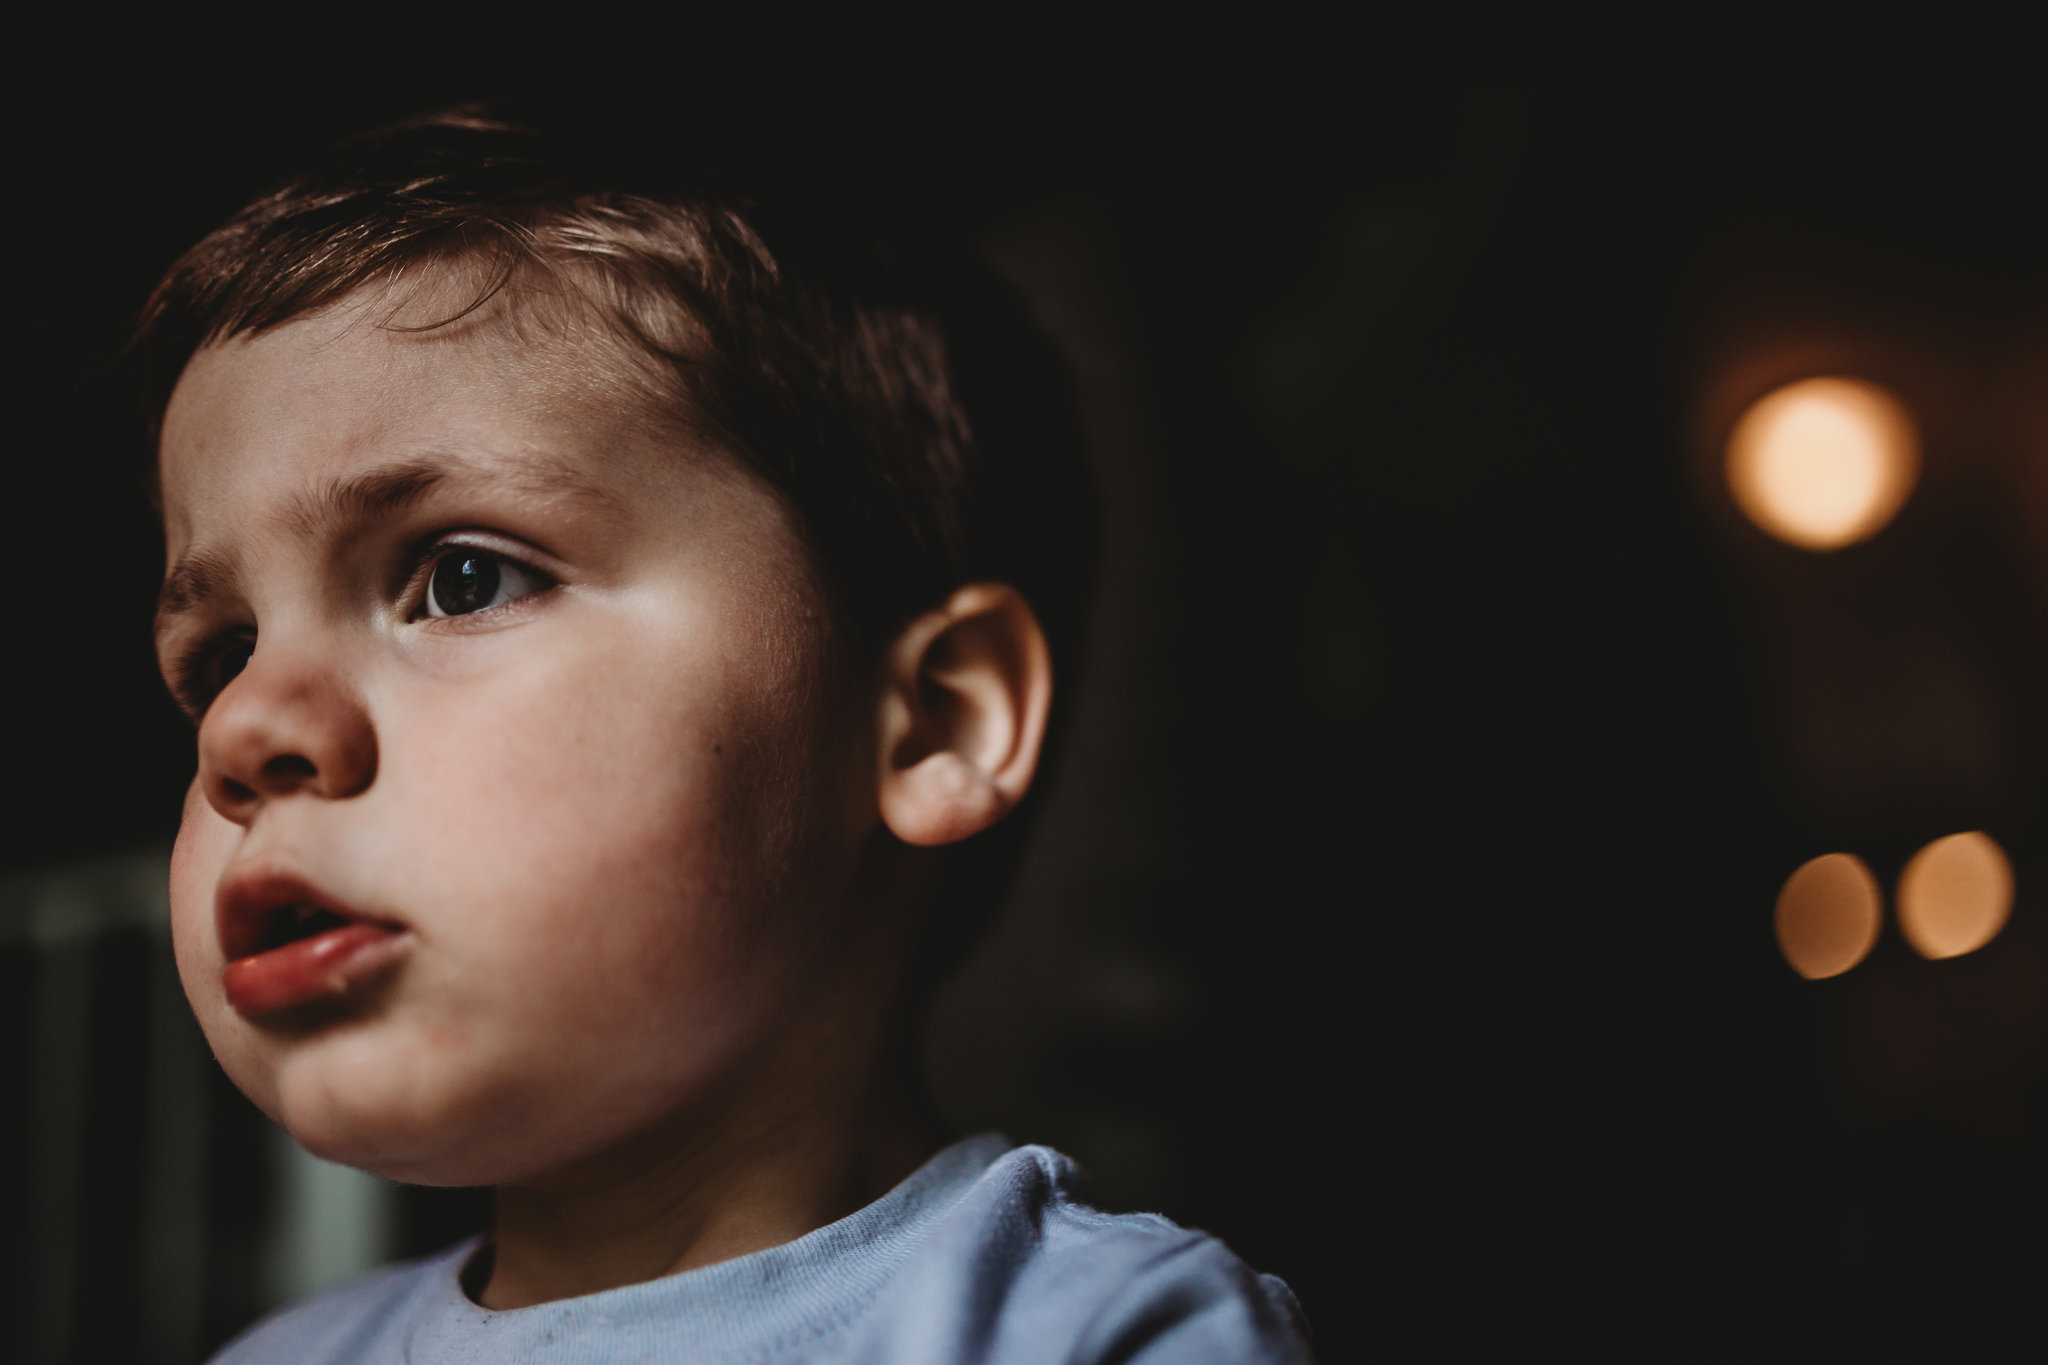 Profile photo of little boy standing near front door light